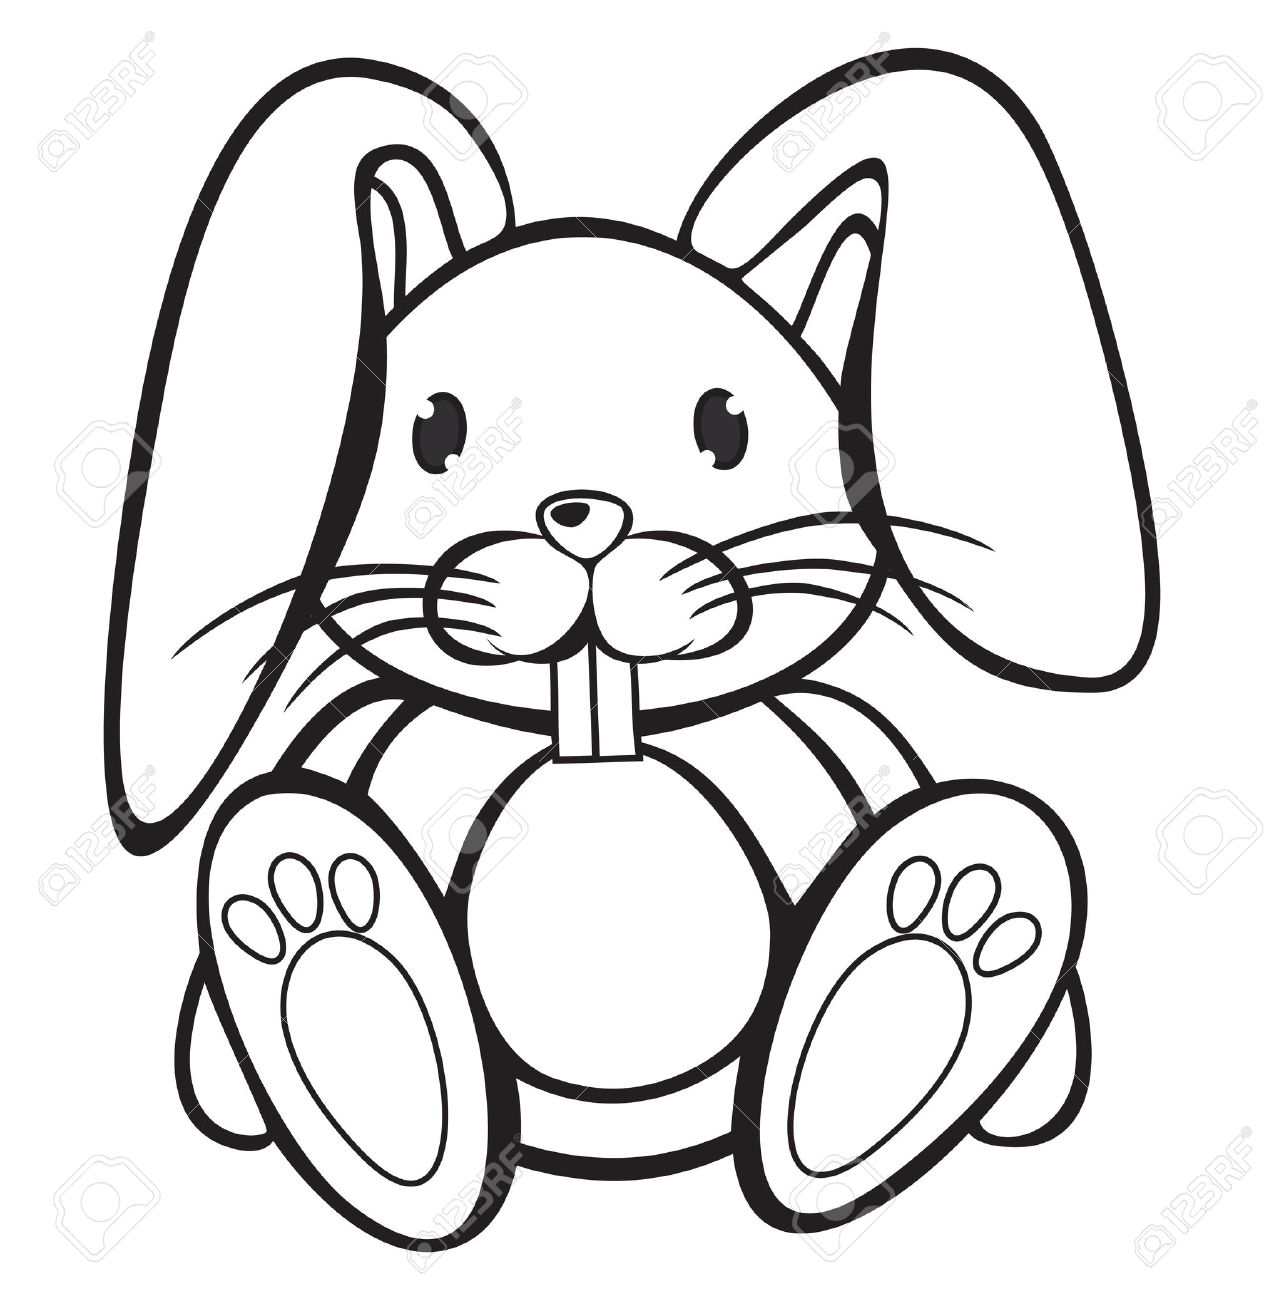 Black And White Rabbit Drawing at GetDrawings | Free download (1264 x 1300 Pixel)